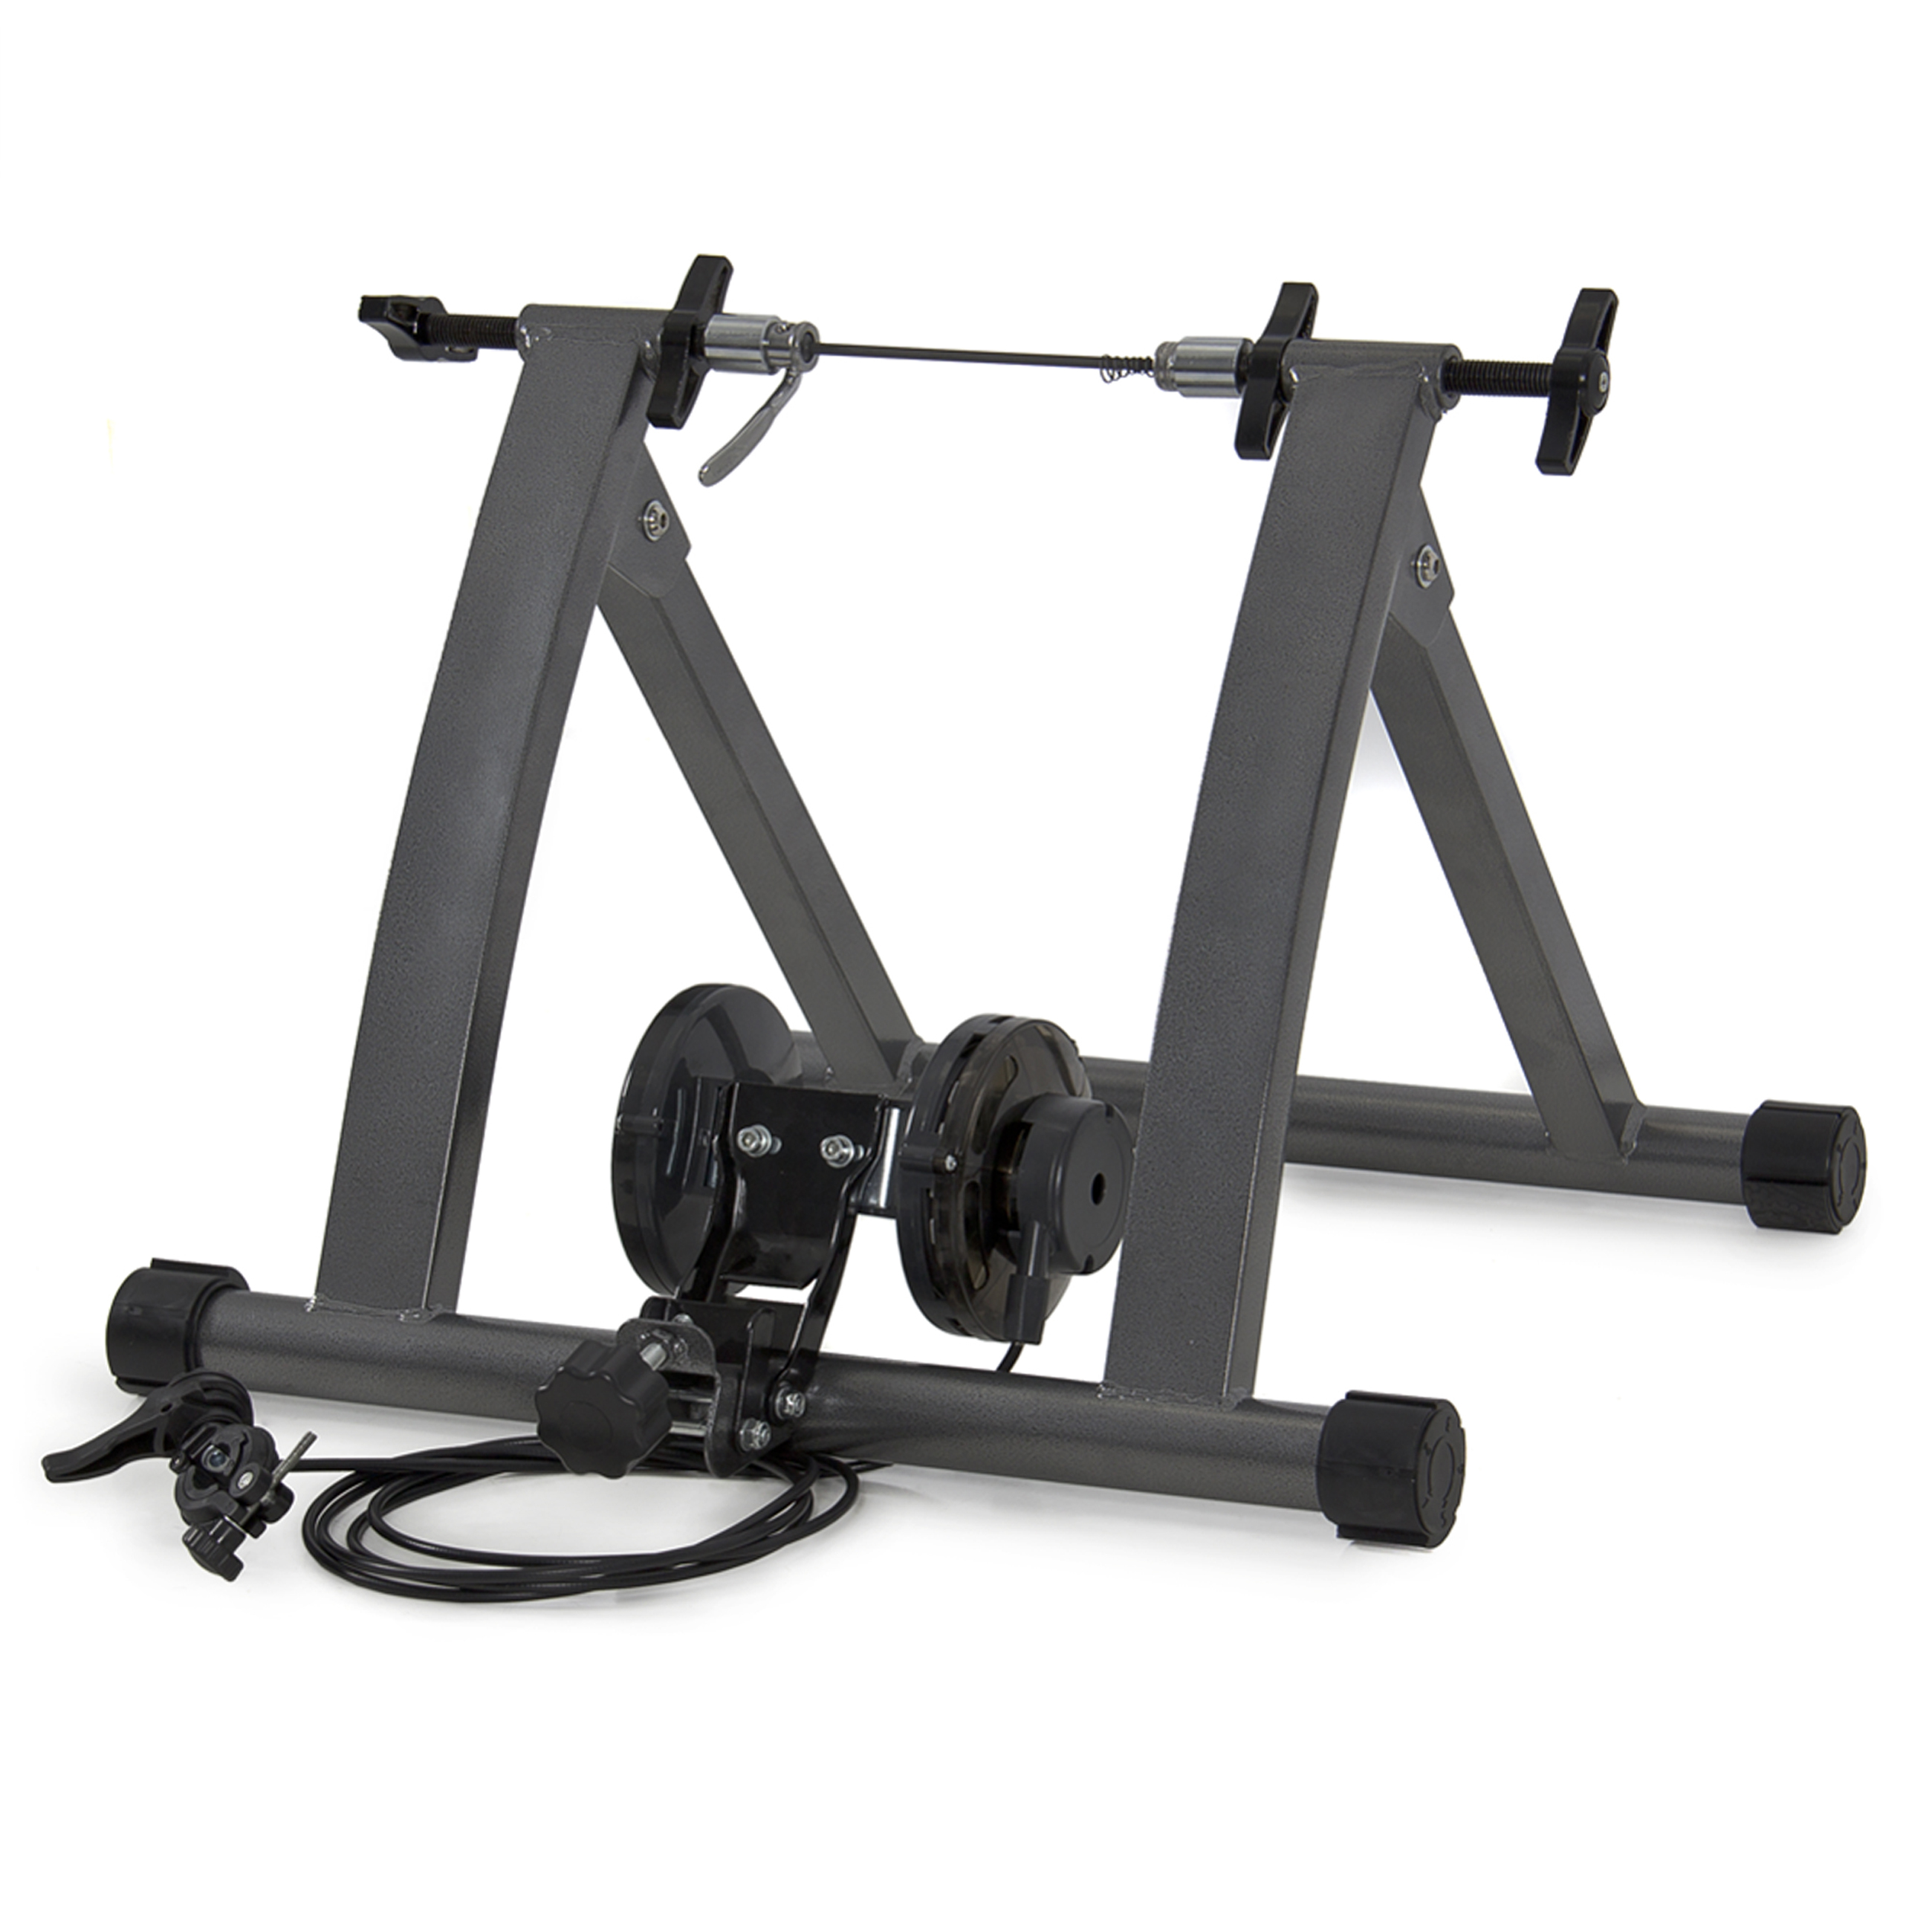 Best Choice Products Foldable Bike Trainer Stand w/ 5 Resistance Levels - Gray